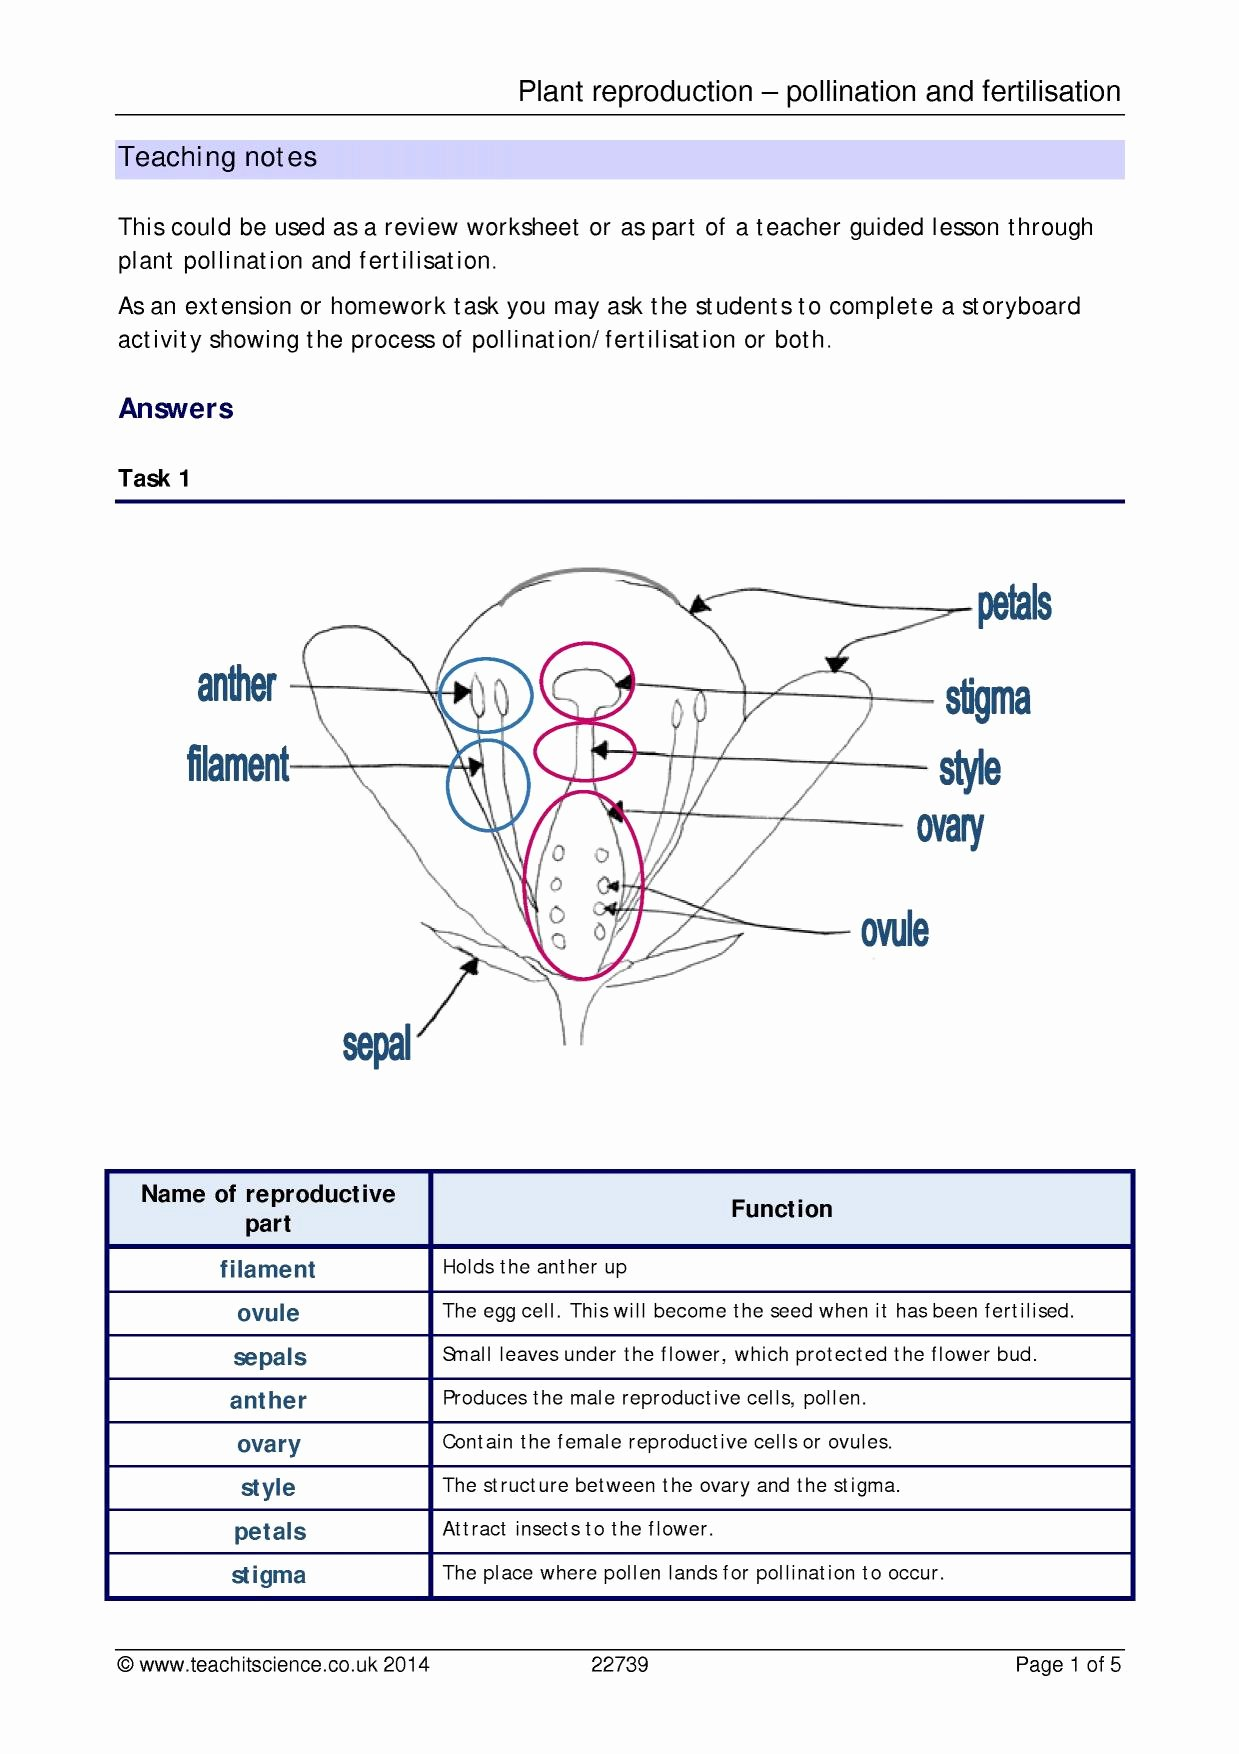 Plant Reproduction Worksheet Answers Luxury Plant Reproduction Pollination and Fertilisation